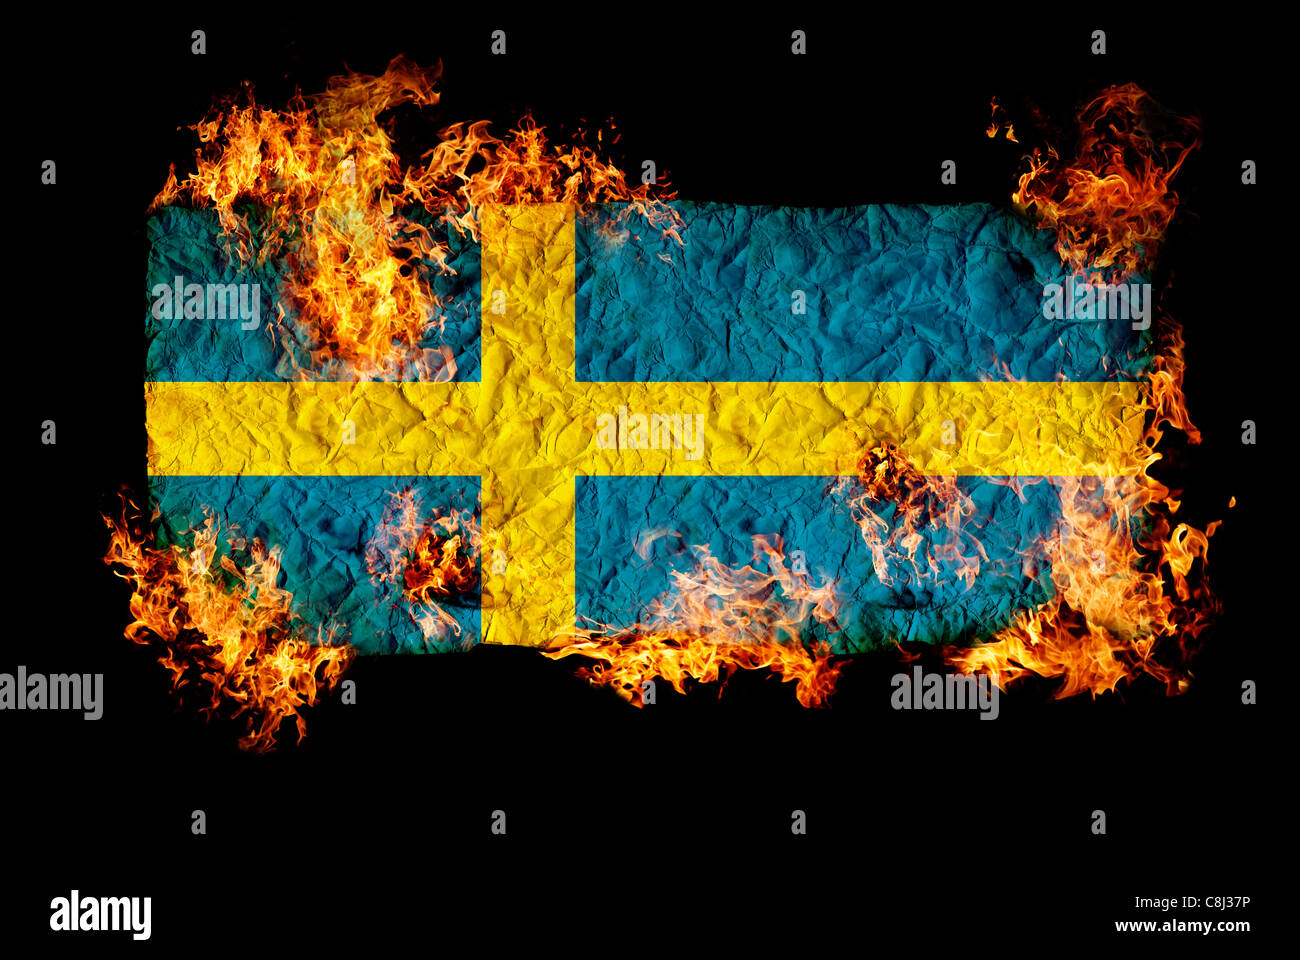 National Symbols And Flag Of Sweden Stock Photo 39735690 Alamy